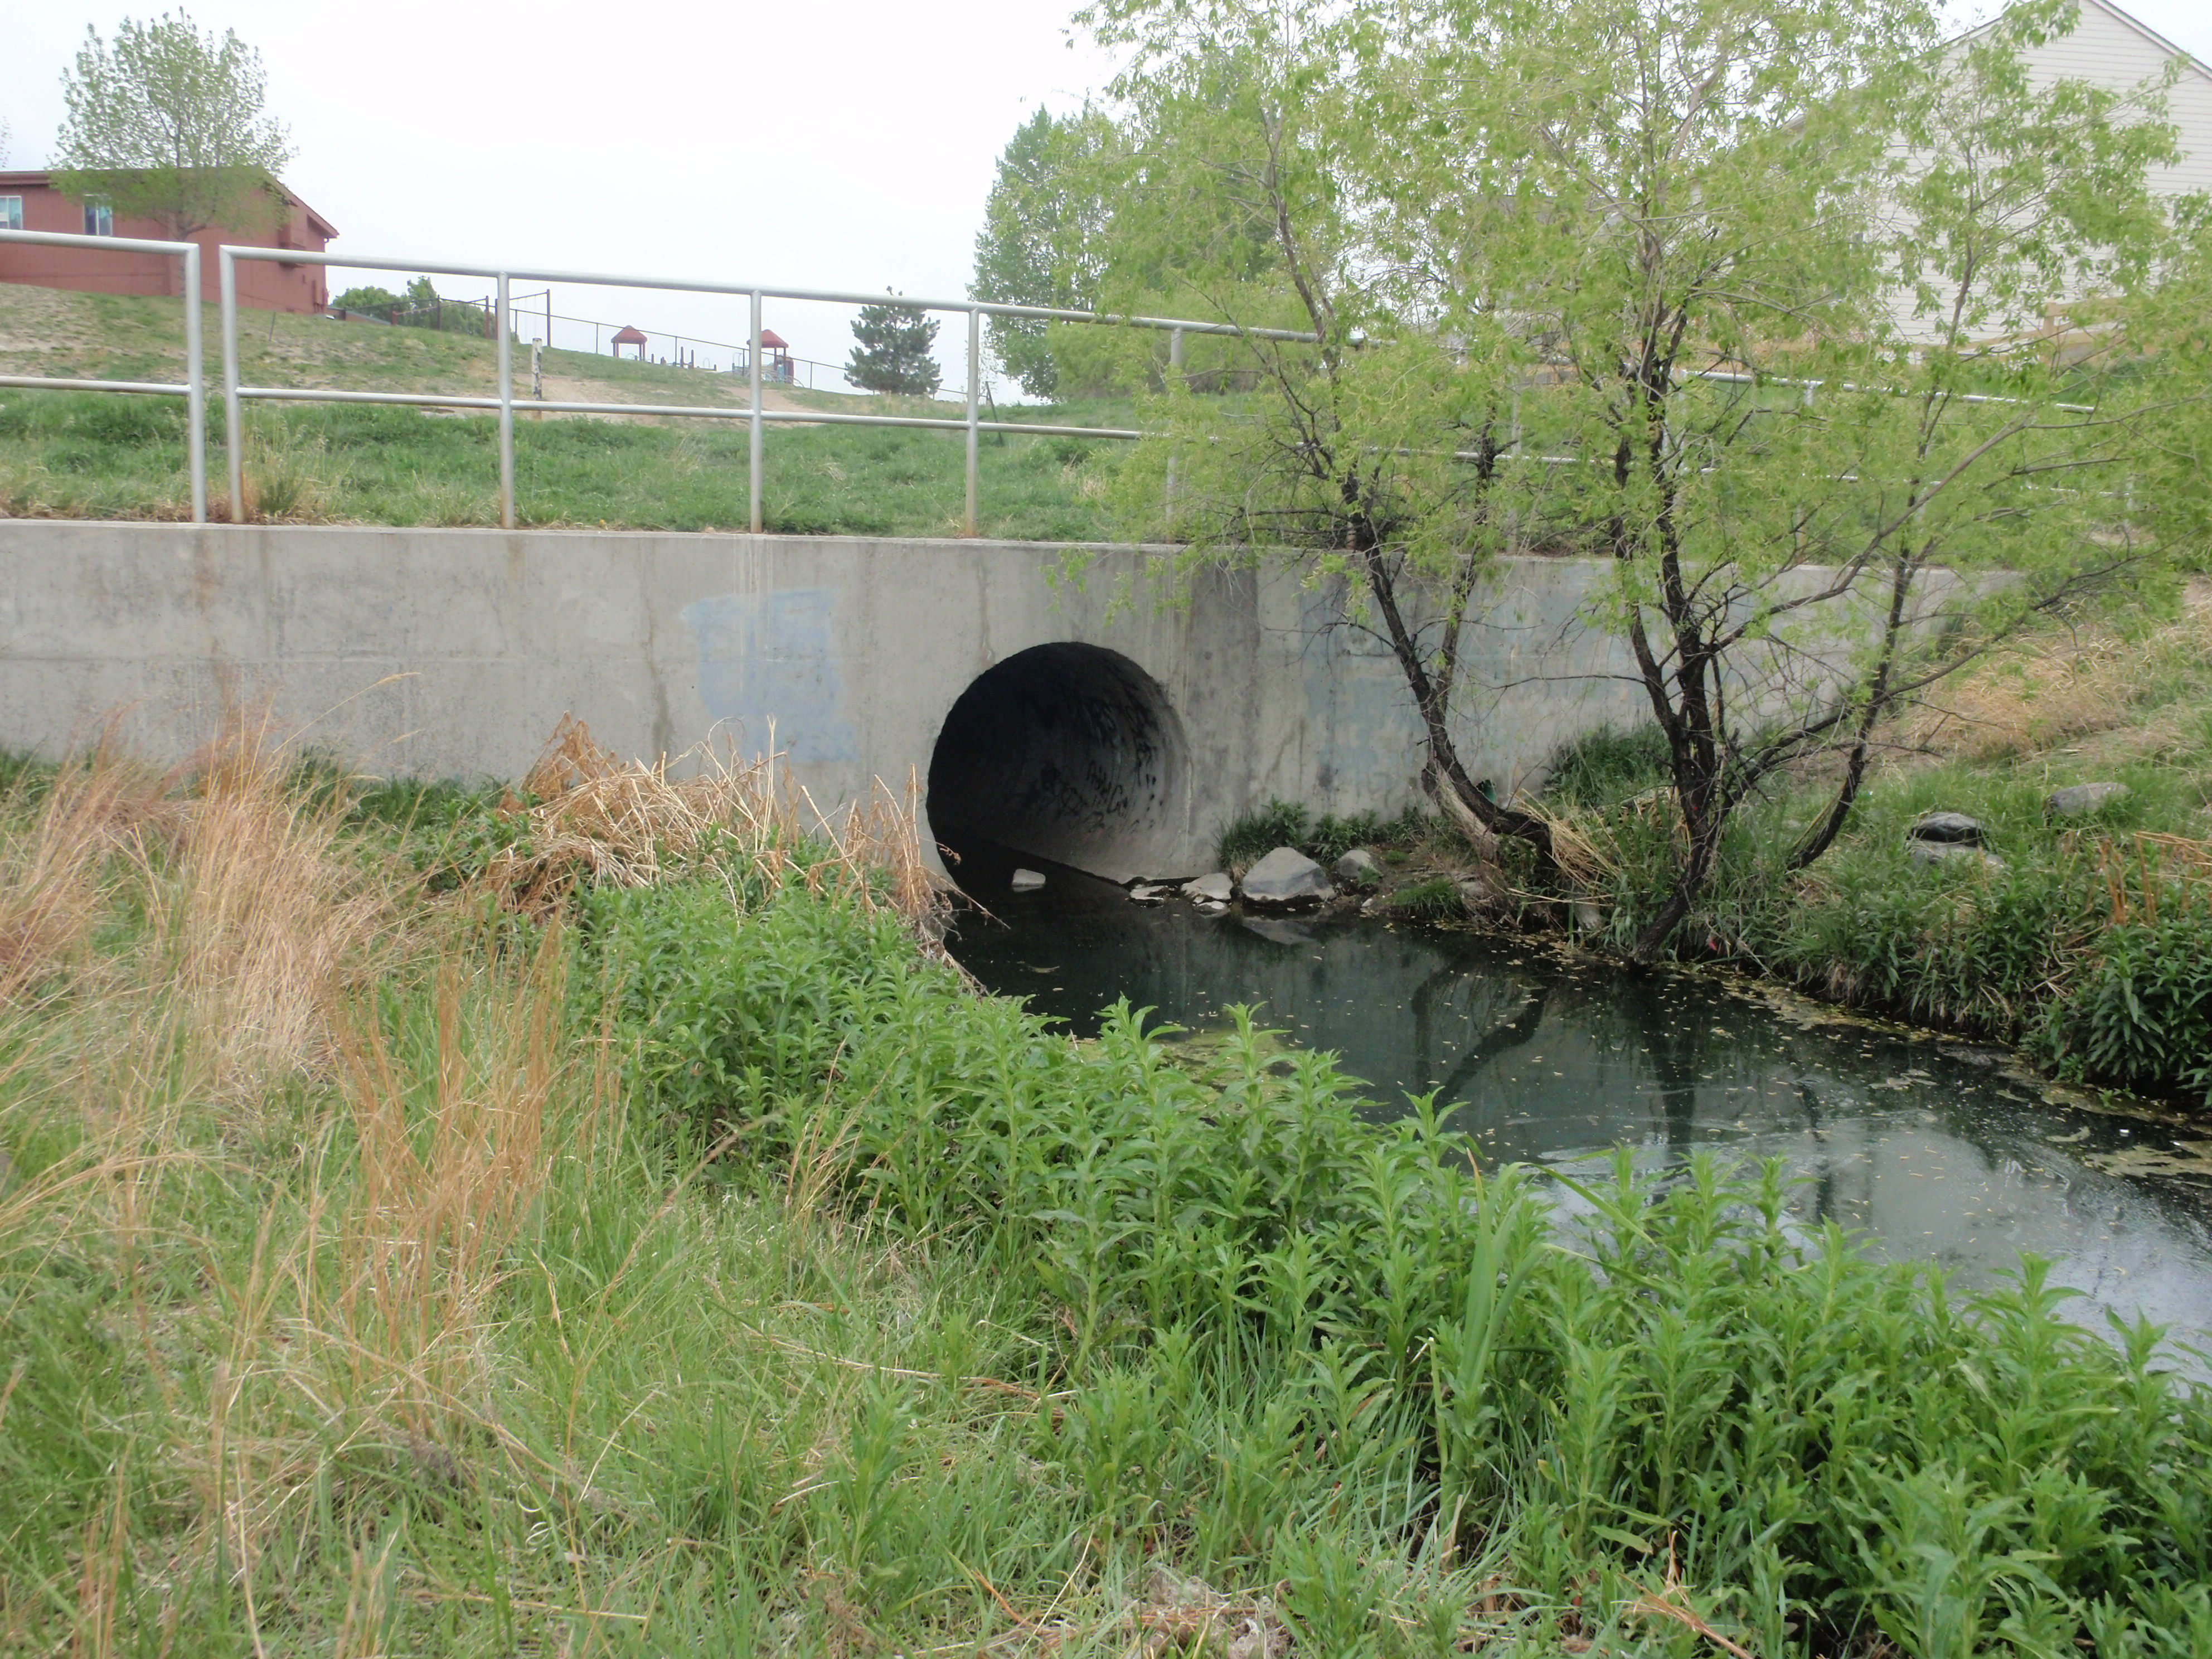 Exploring the Storm Water Drain System